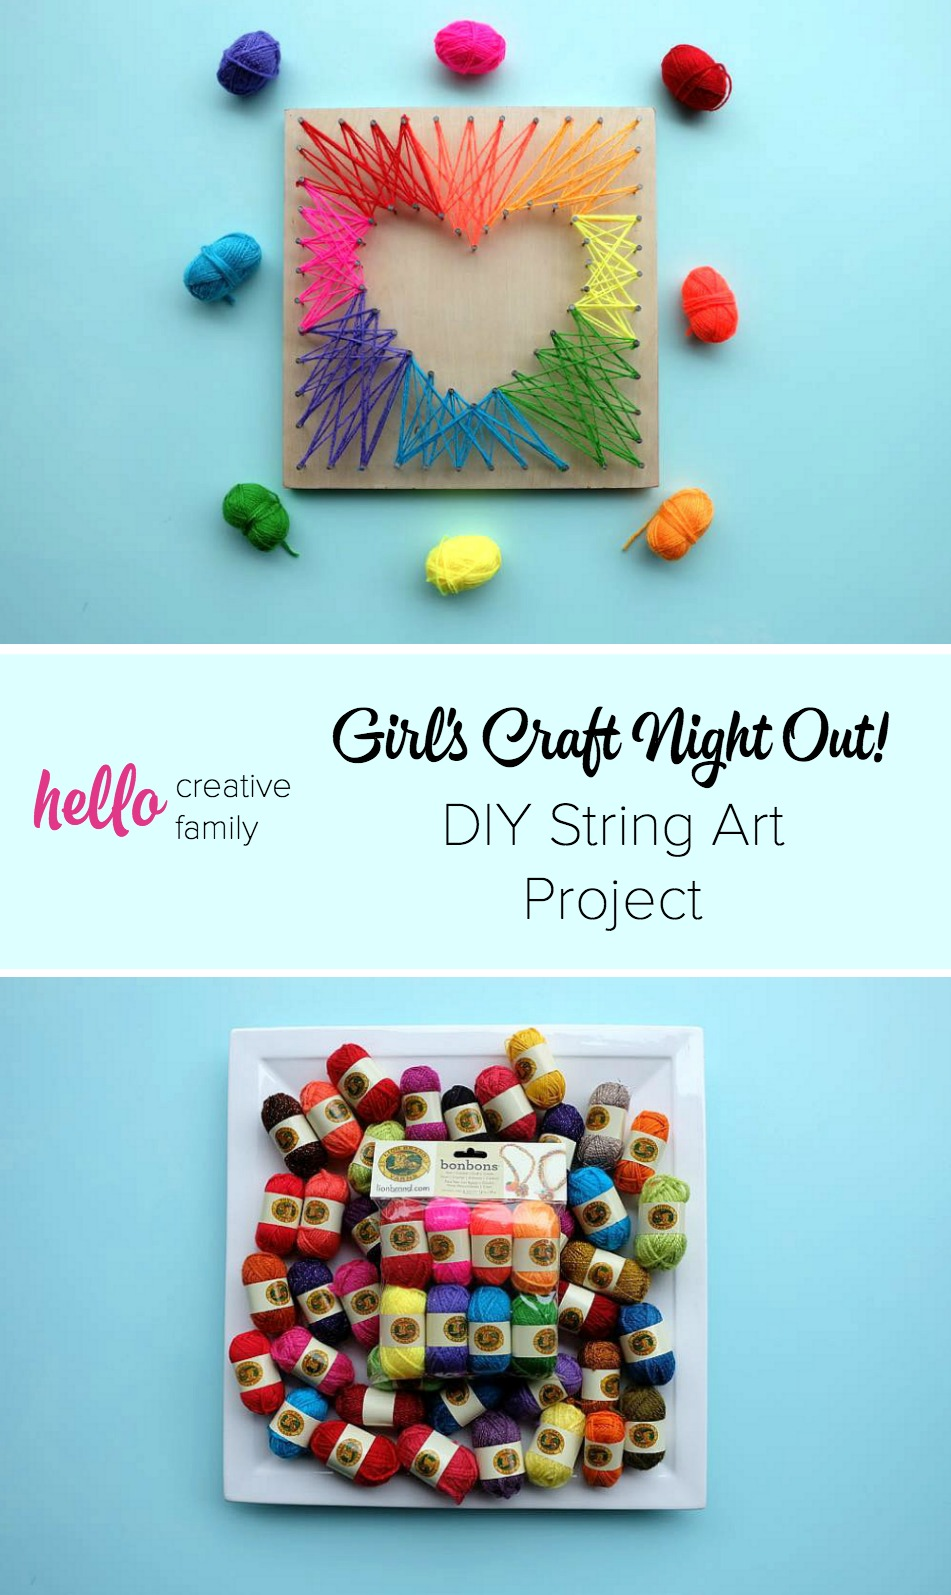 Get a group of girlfriends together for a craft night and try this easy DIY project! Make your own string art with these easy instructions.